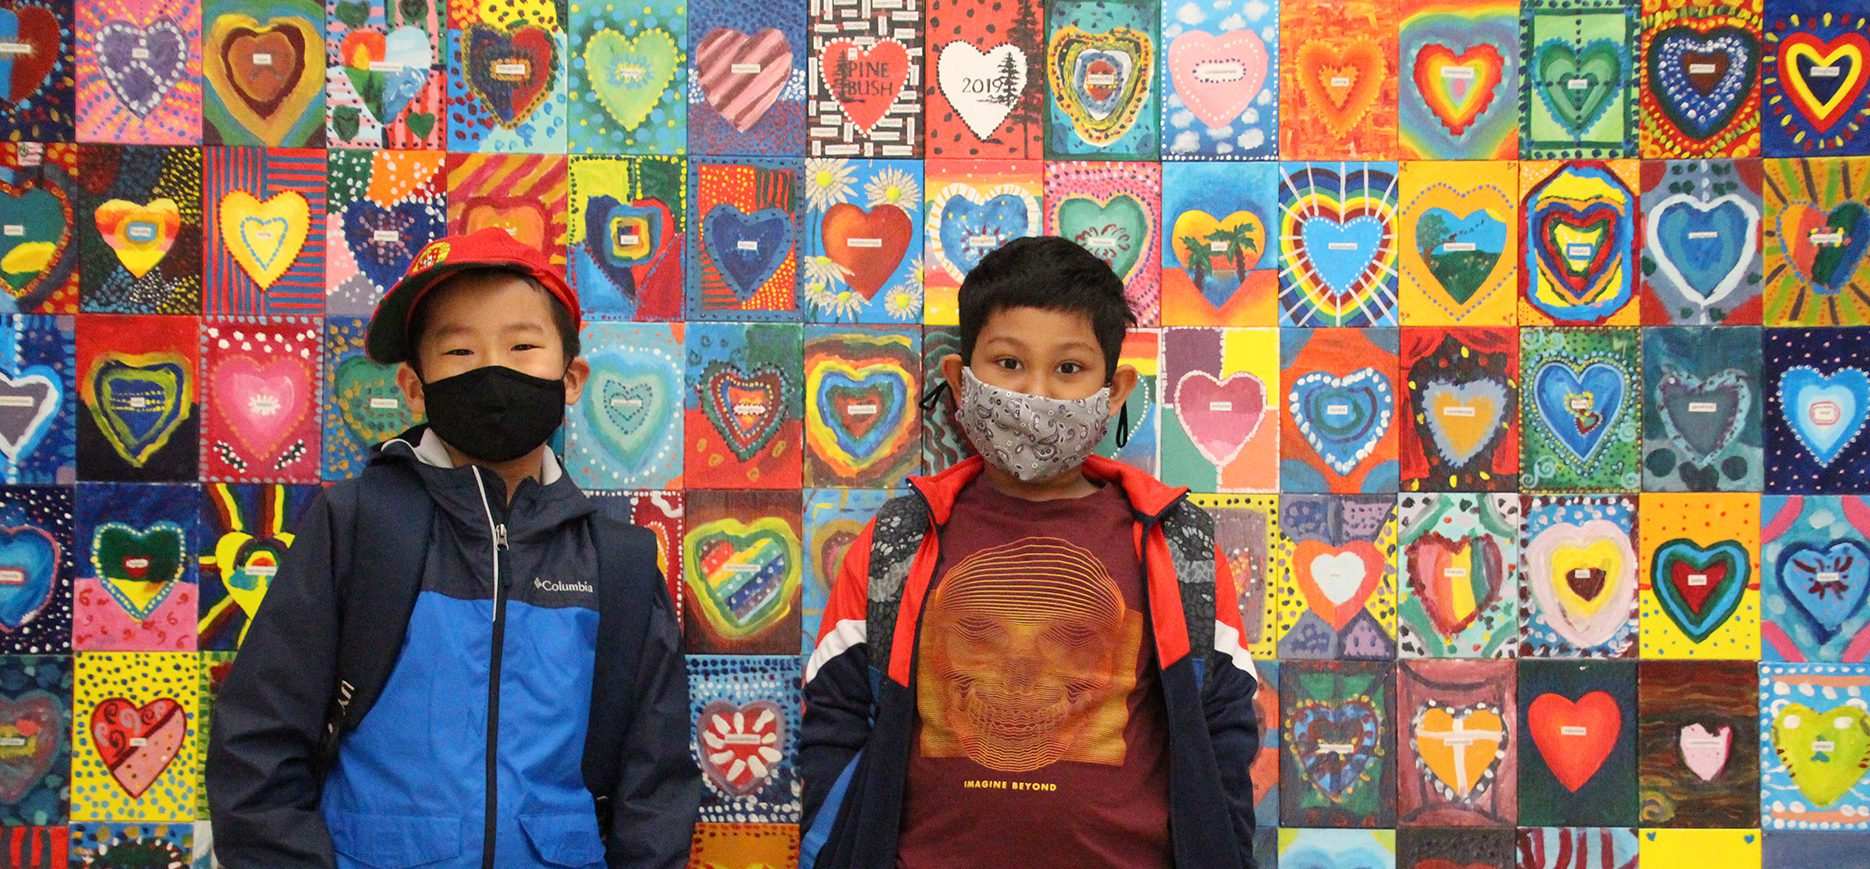 Two Guilderland students wearing masks stand in front of a large background of multi-colored and patterned hearts